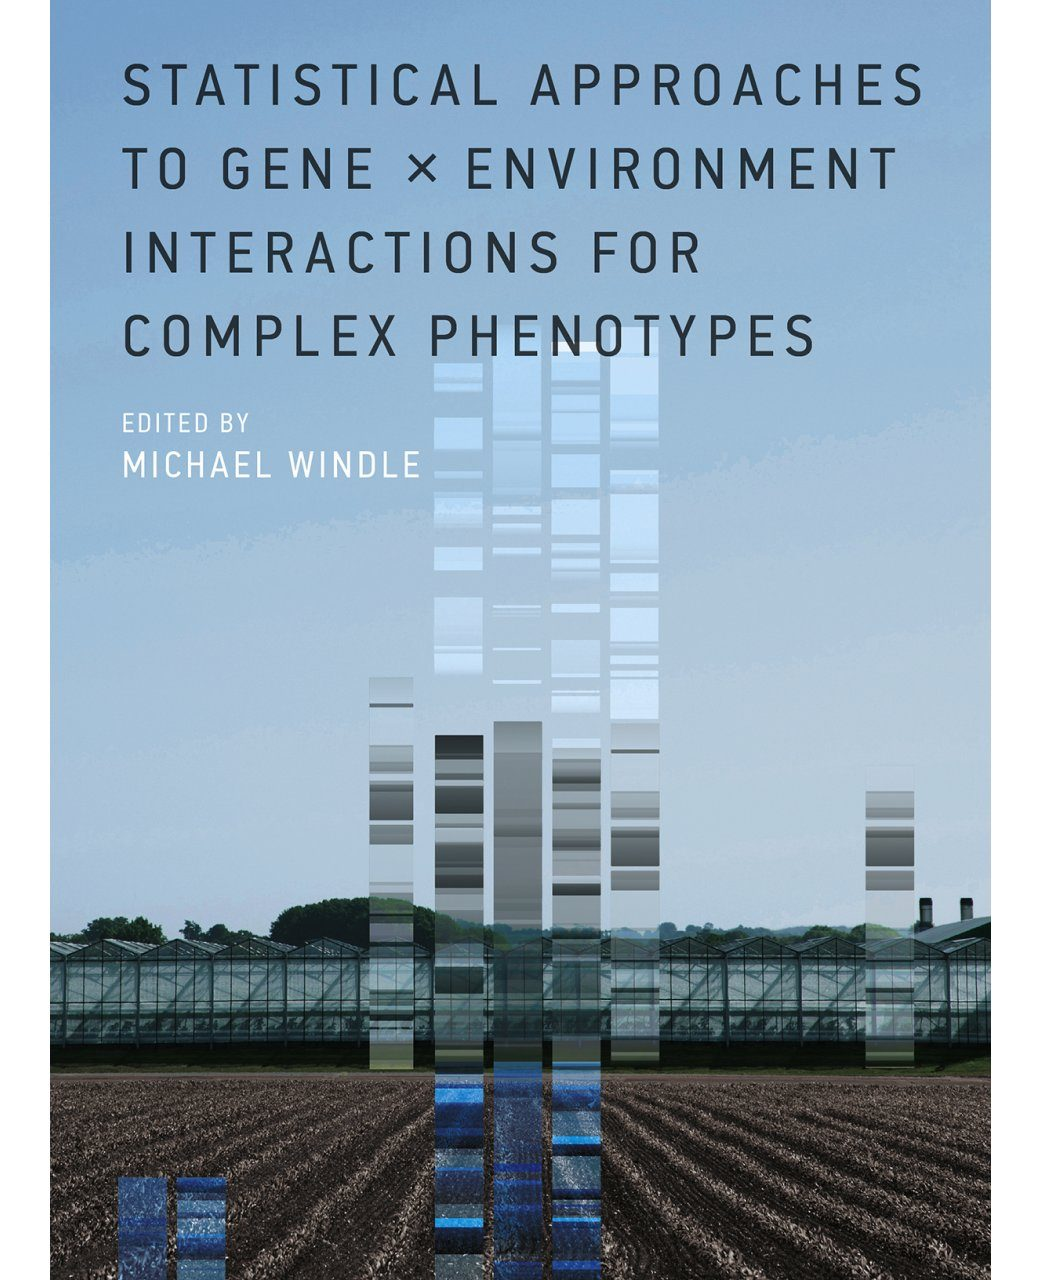 Statistical Approaches to Gene × Environment Interactions for Complex Phenotypes